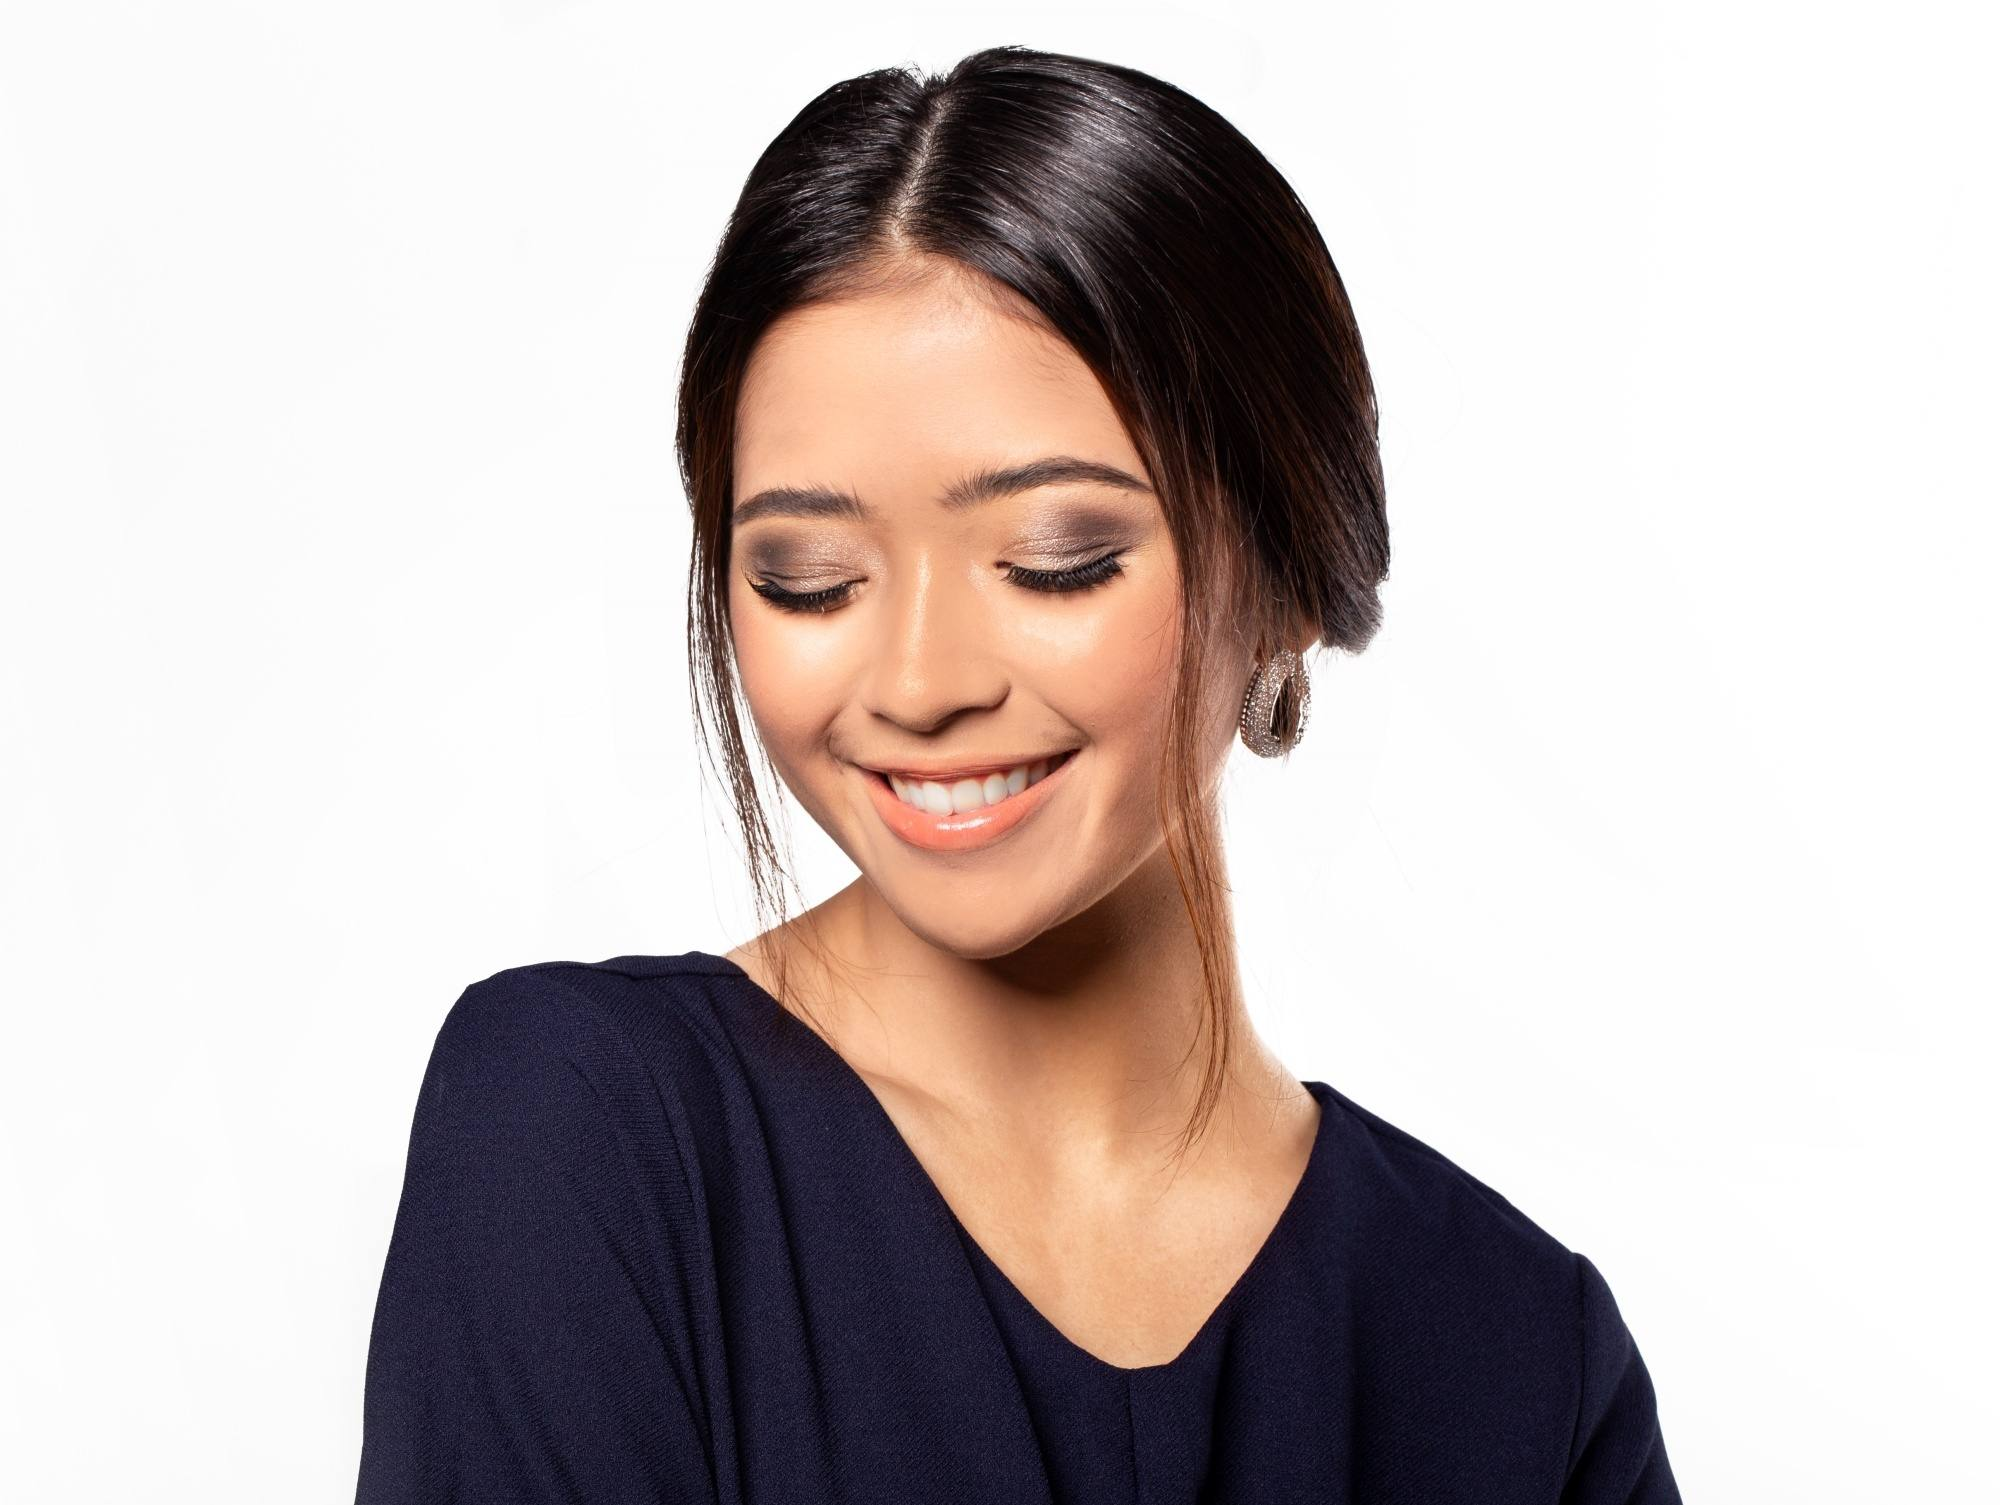 Chignon for short hair: Closeup shot of an Asian woman with dark hair in chignon smiling